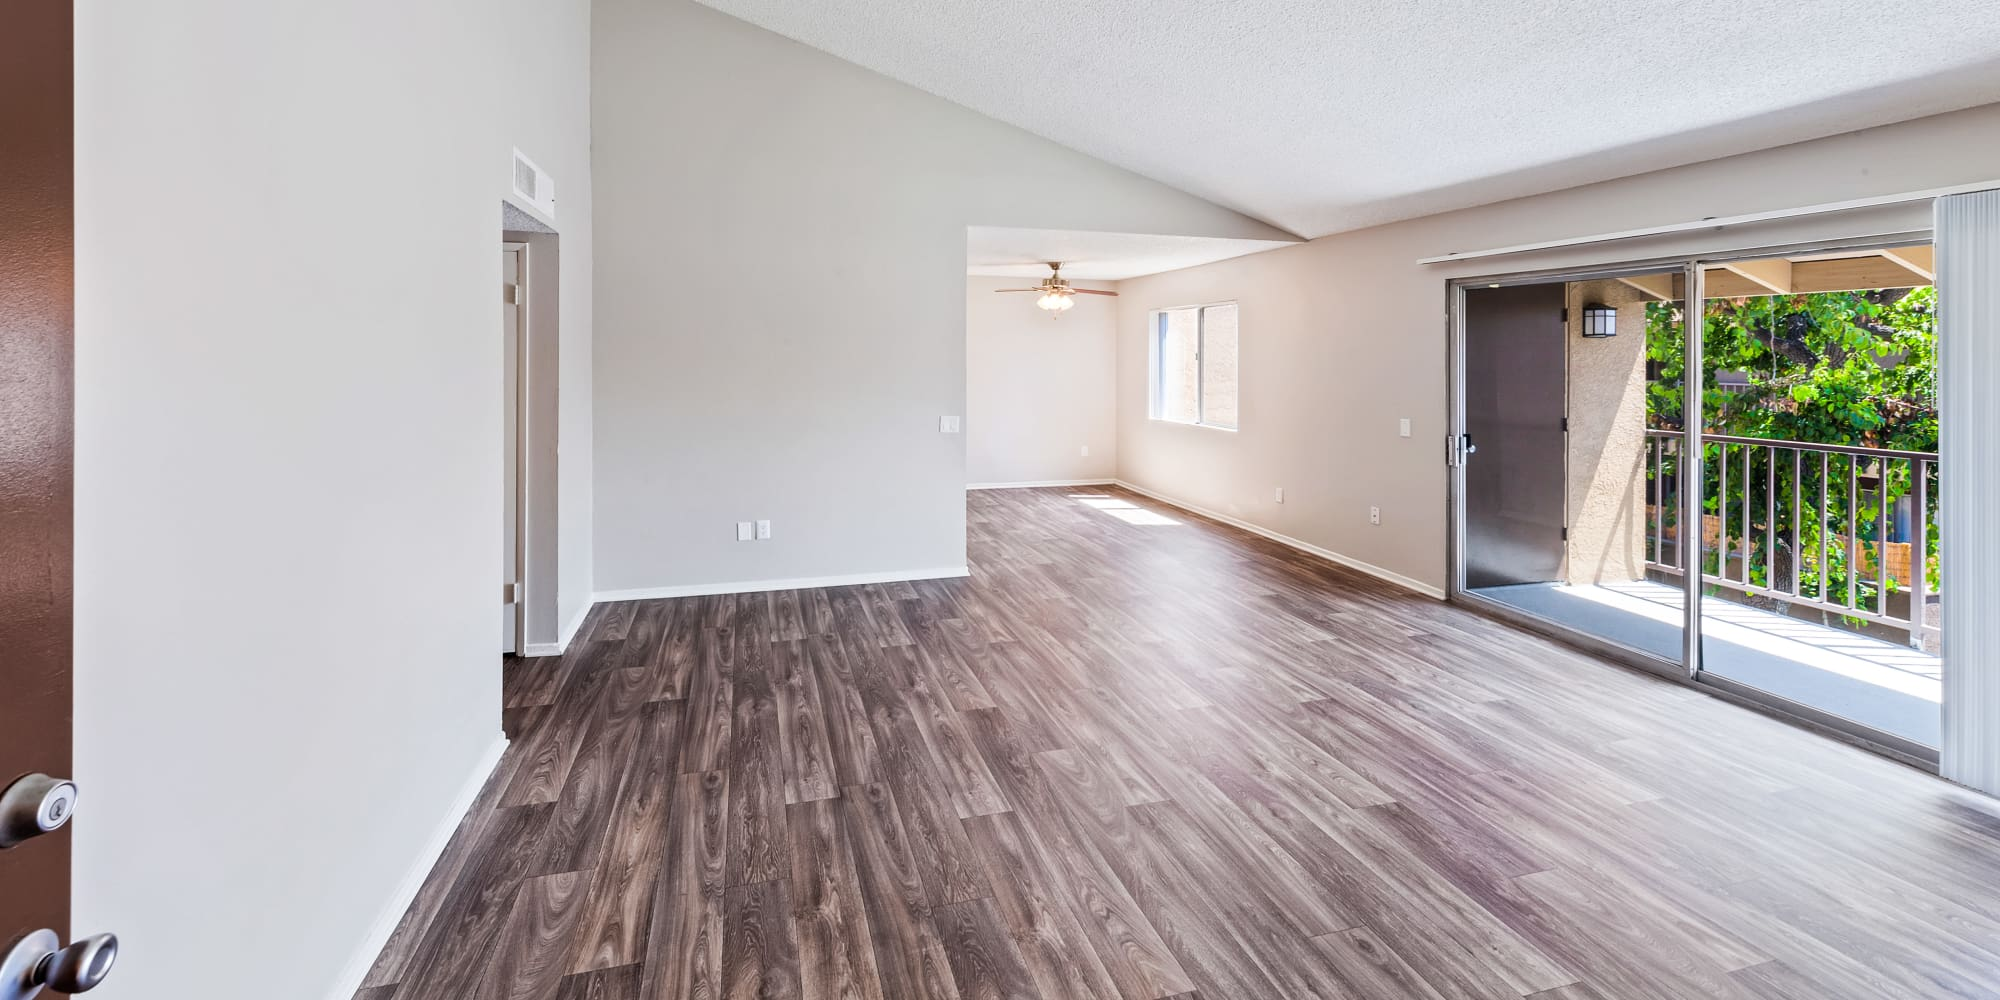 Spacious living room with hardwood floors at West Fifth Apartments in Ontario, California